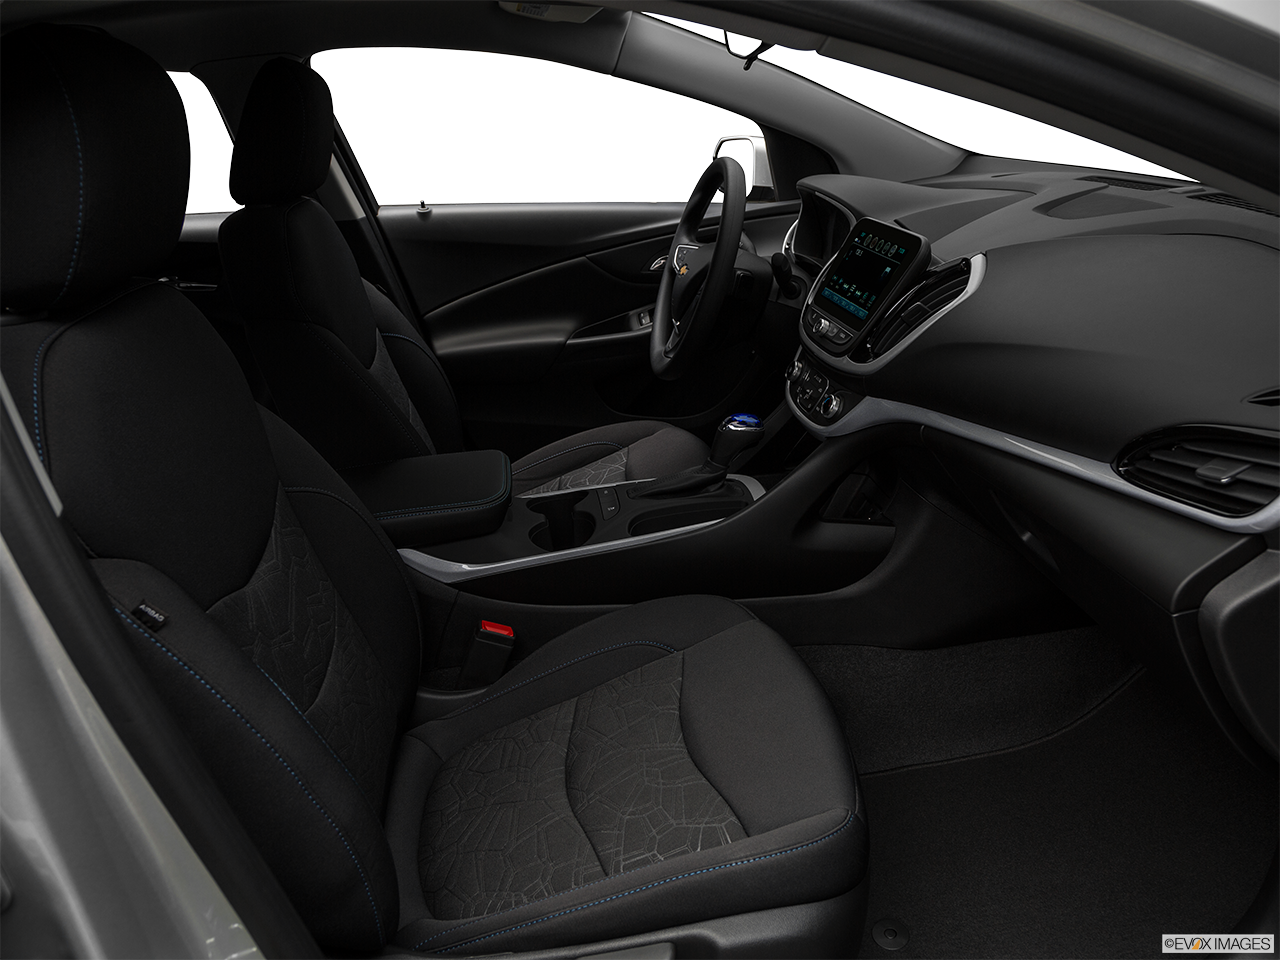 Interior view of the Chevrolet Volt